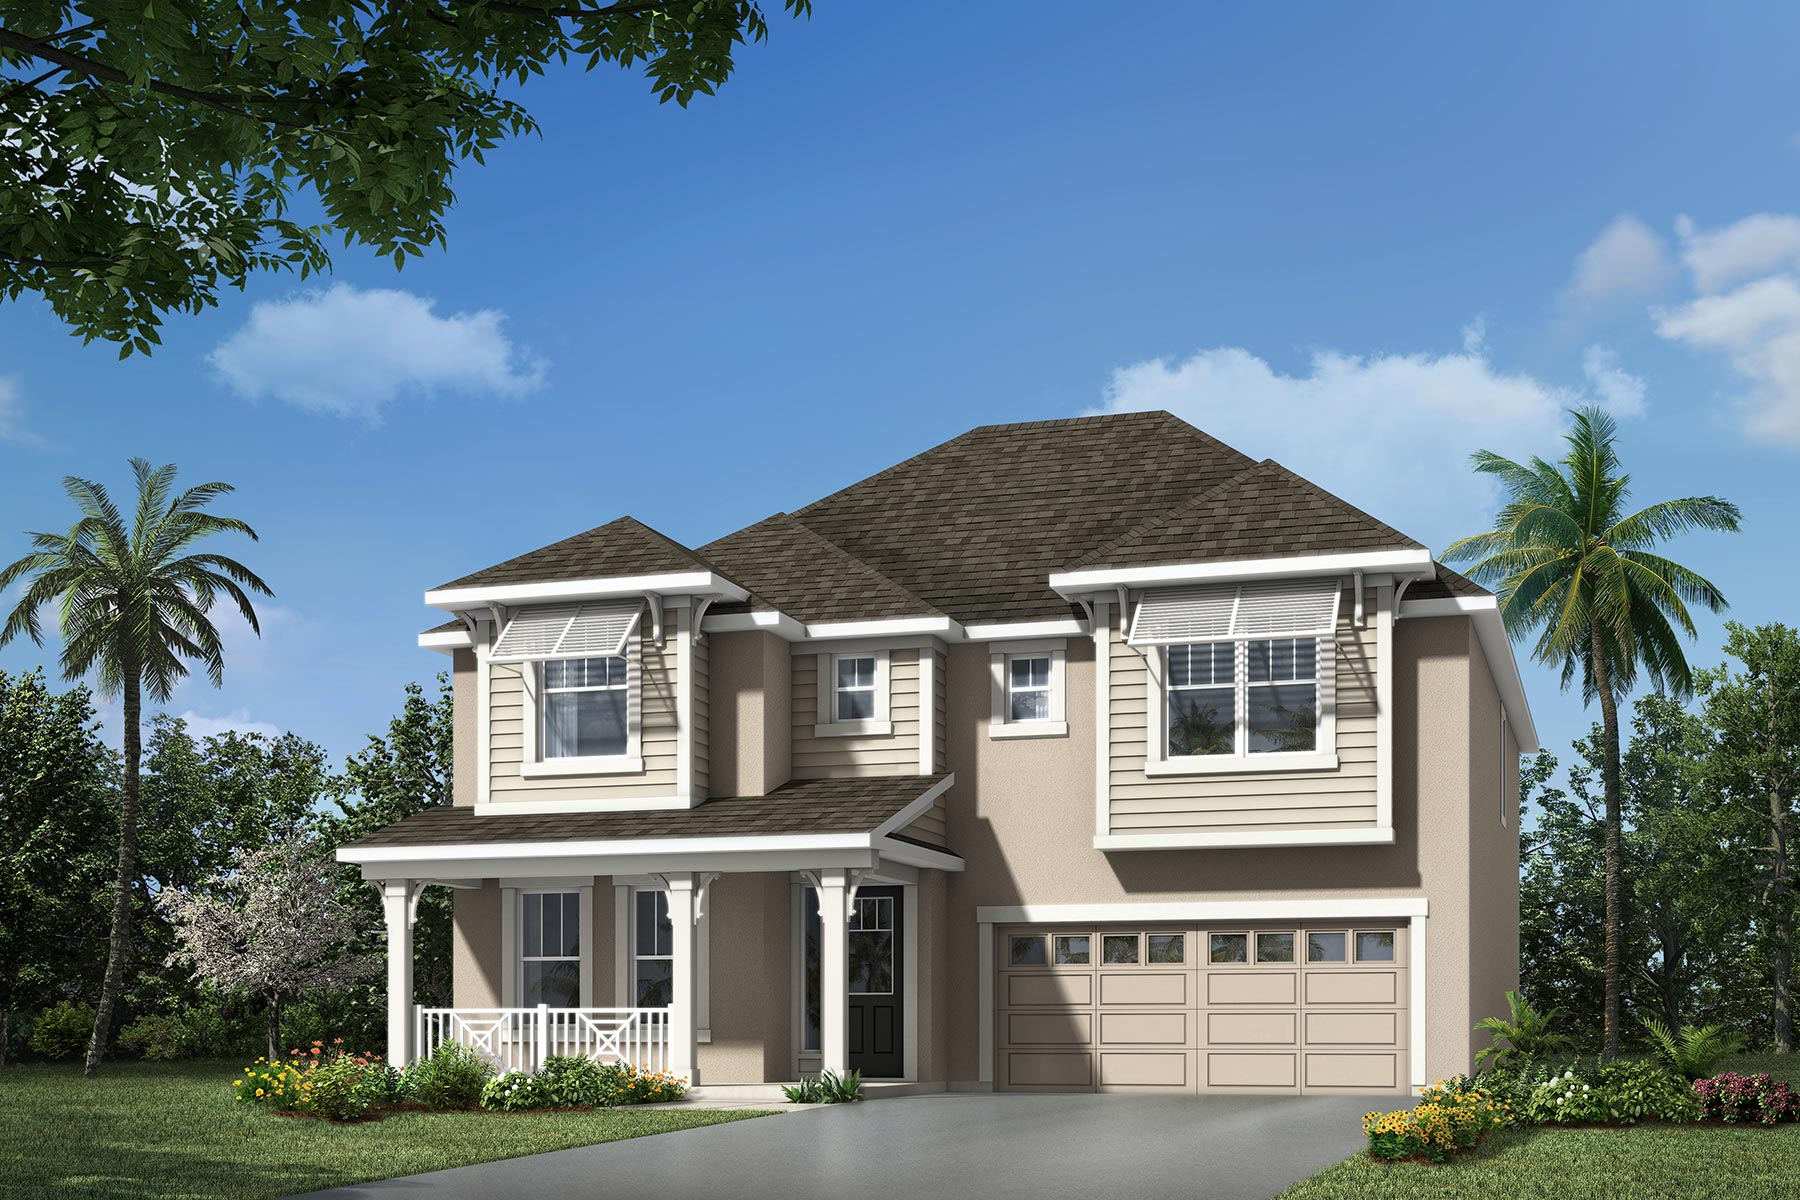 Winthrop Plan Elevation Front at Meridian Parks in Orlando Florida by Mattamy Homes